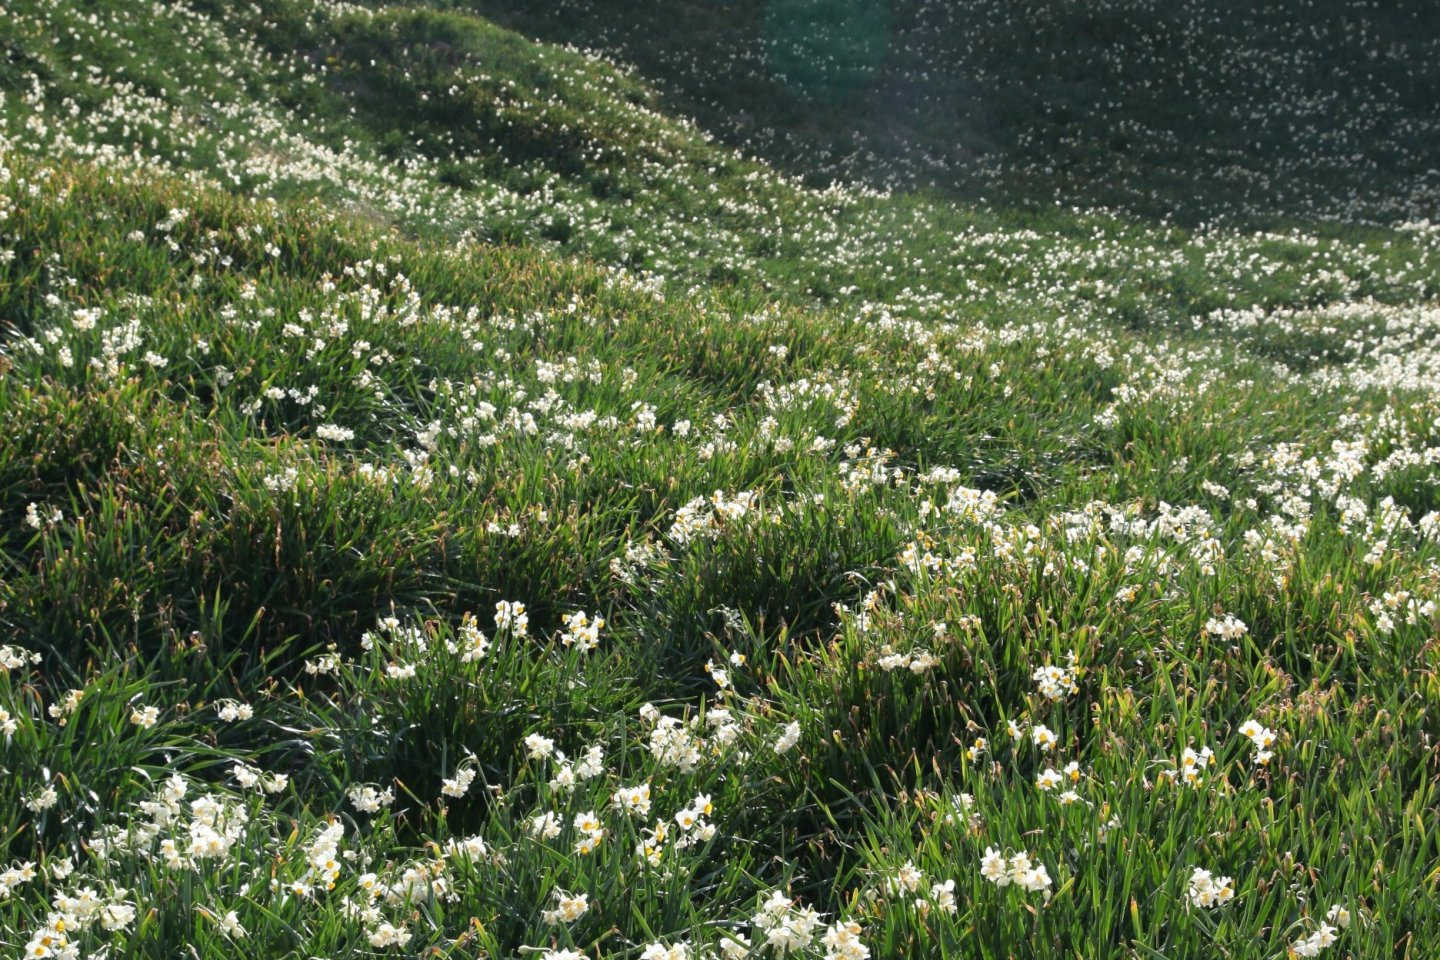 Over 3 million narcissus flowers cover the Suzaki Peninsula